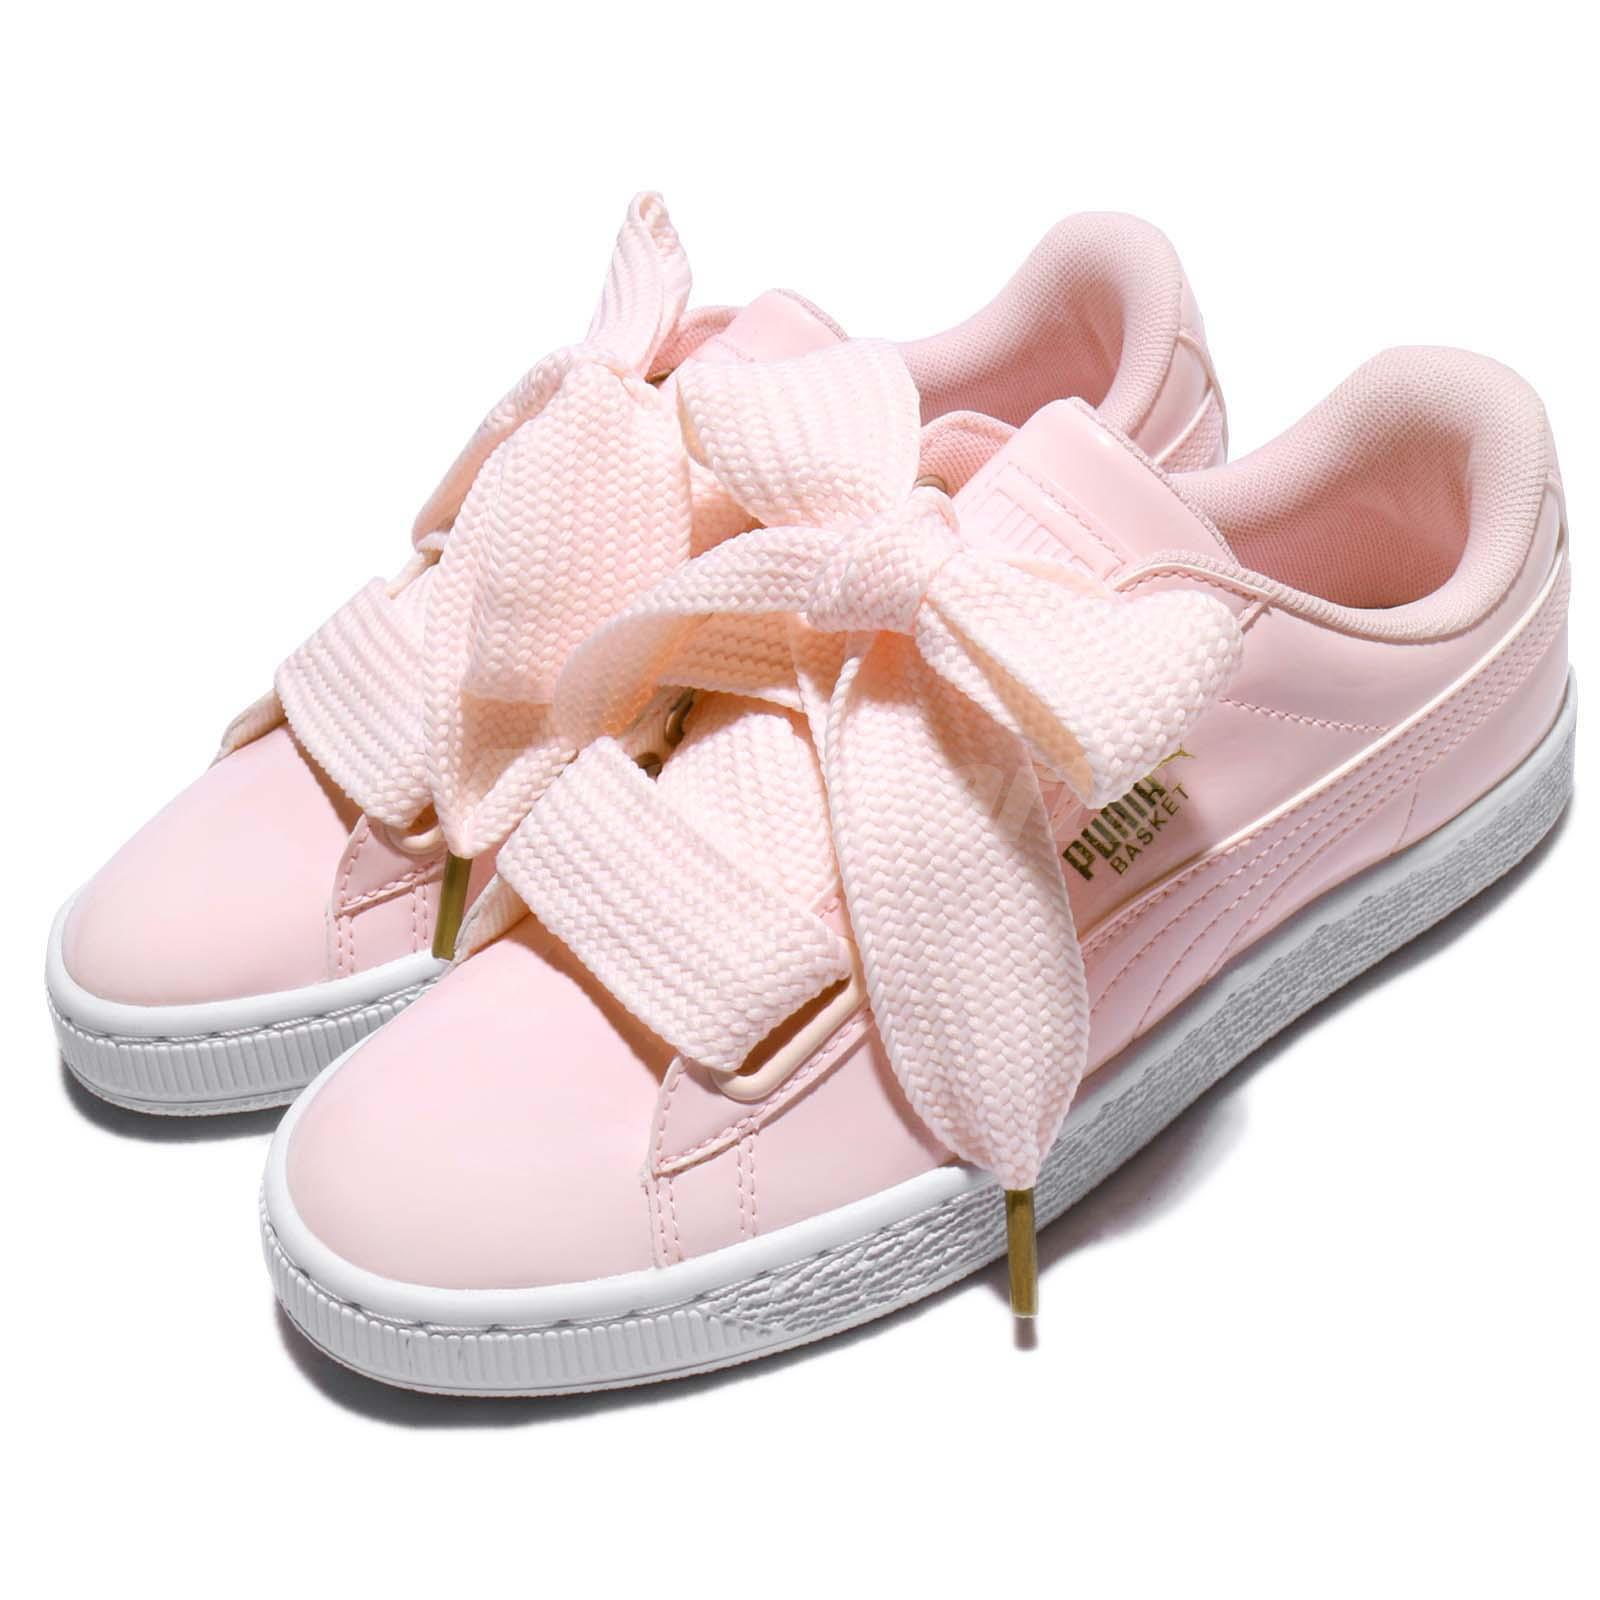 Puma Basket Heart Patent Wns Pearl Pink Gold Patent Leather Women Shoe 363073 14